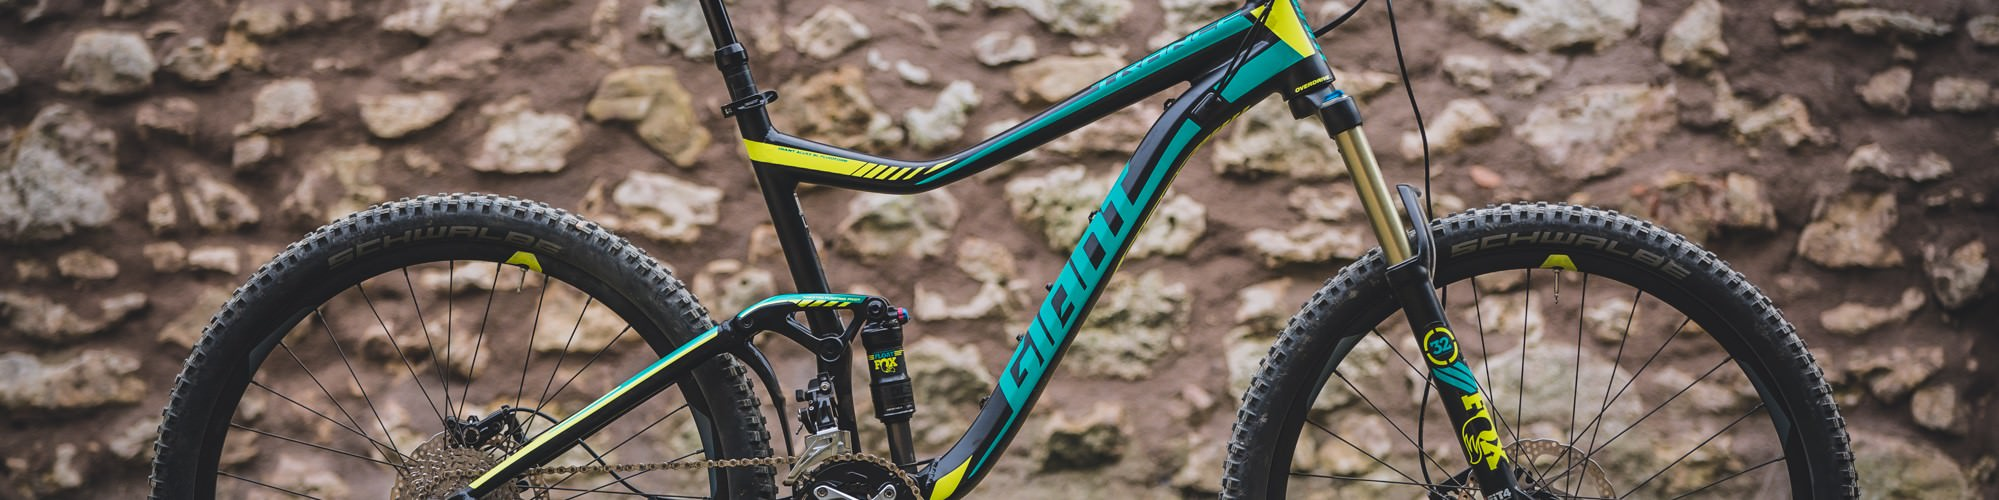 c81cae8db2f Giant Trance 2 LTD Review | ENDURO Mountainbike Magazine